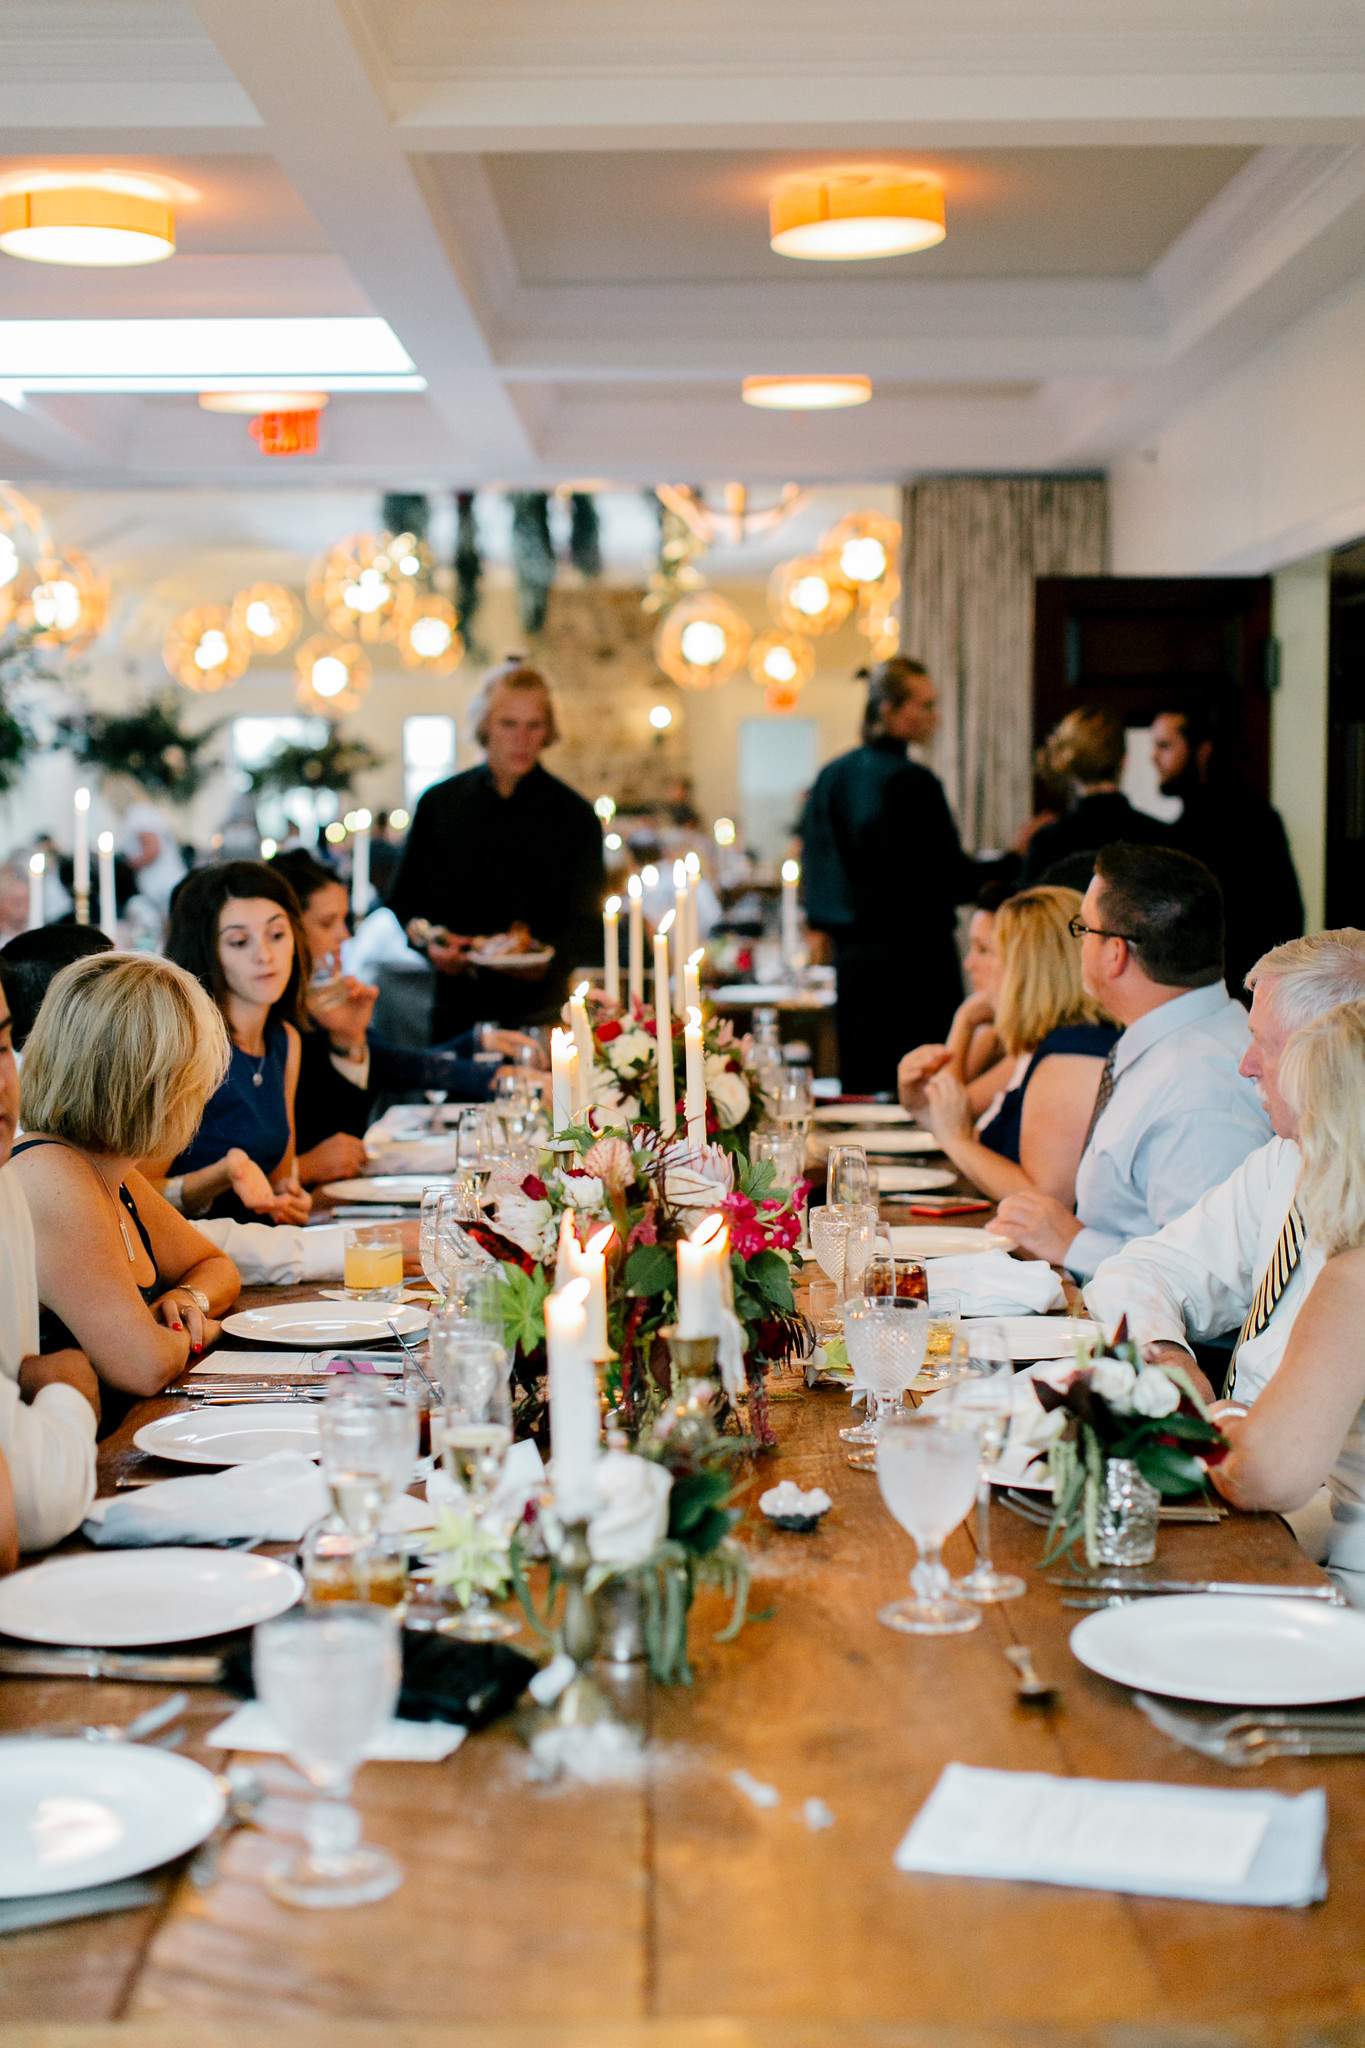 Corporate gathering at a long communal table with fresh wild flowers and candle sticks.